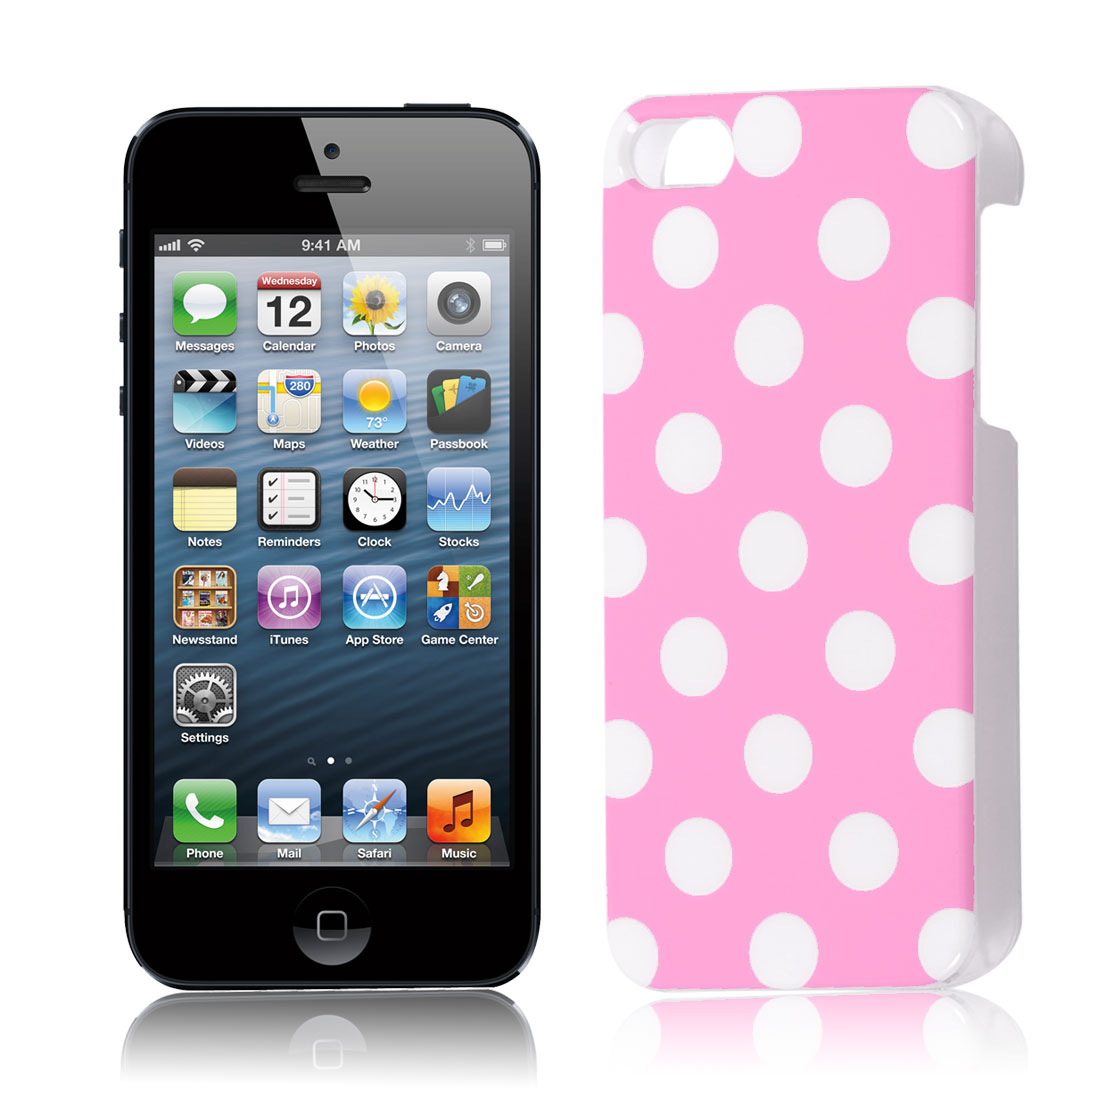 Pink White Plastic Small Round Dots Pattern Back Case Cover for iPhone 5 5G 5th Gen